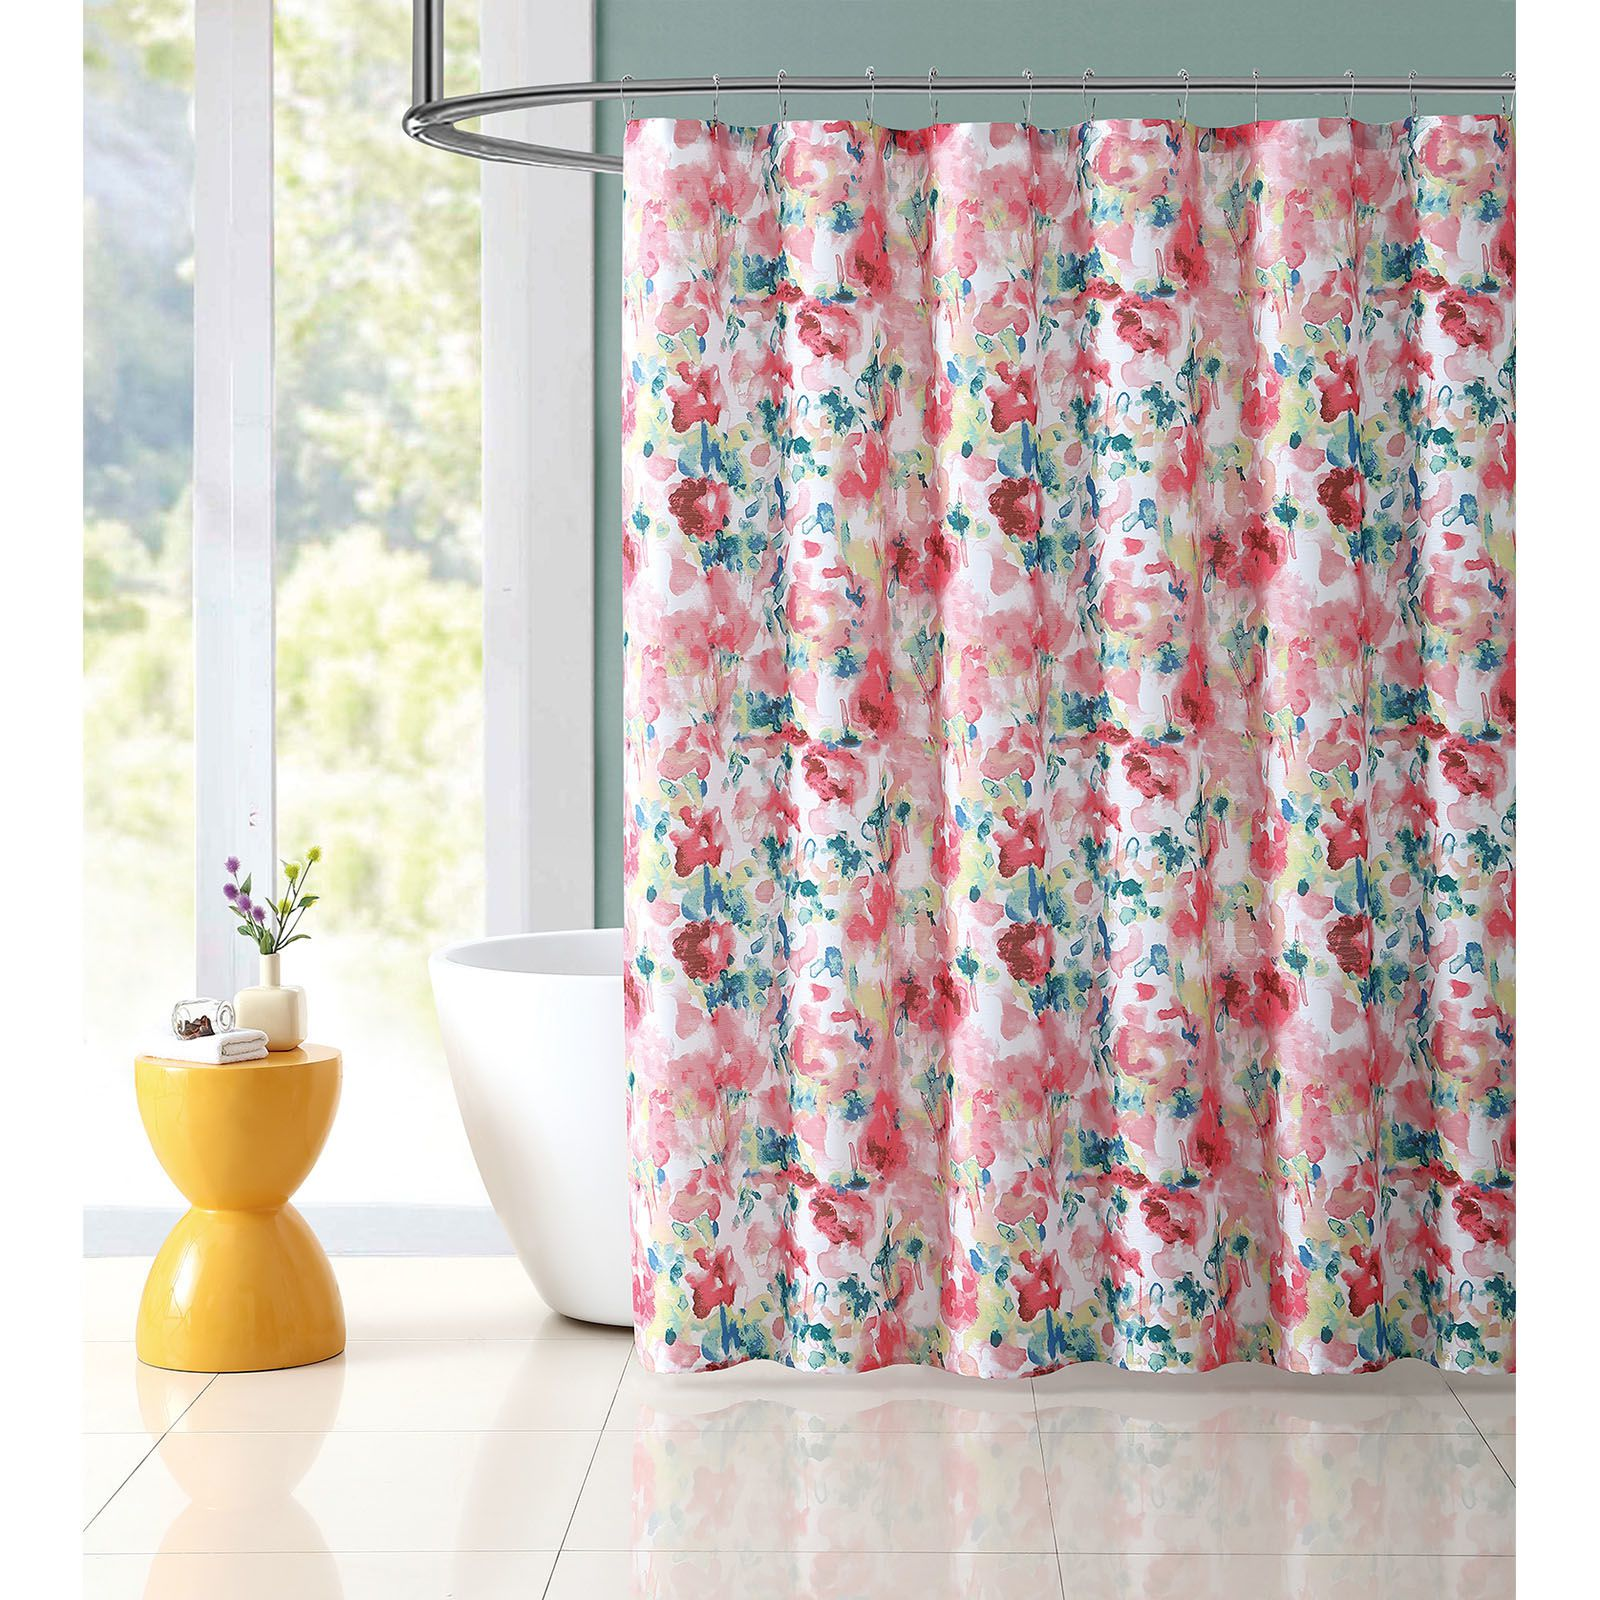 Curtains clipart shower curtain. Marvelous bright tropical floral